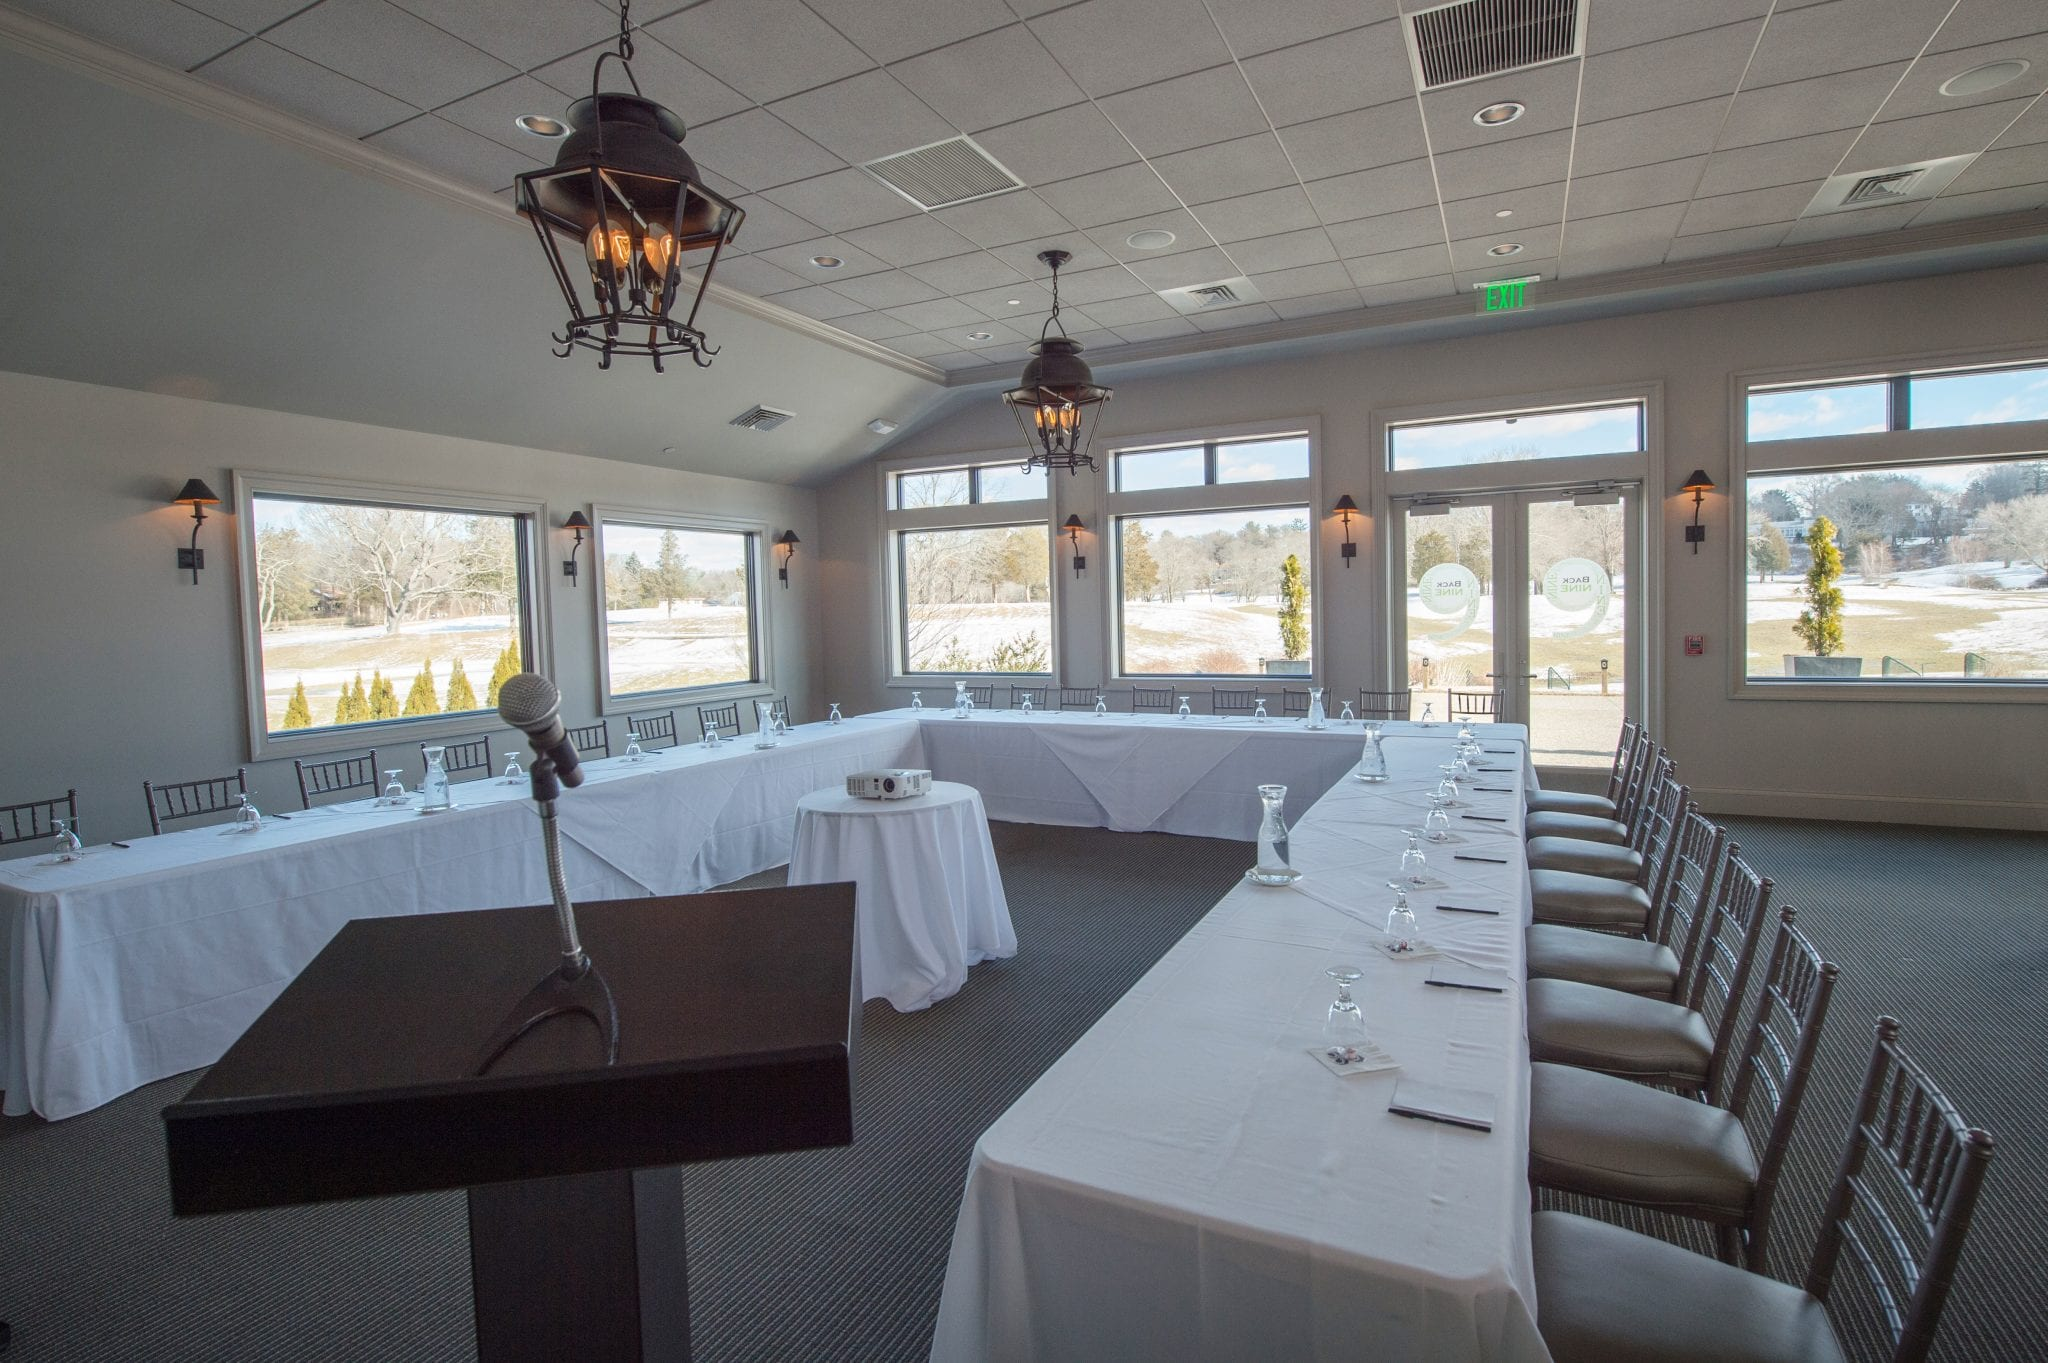 Banquet room with tables.